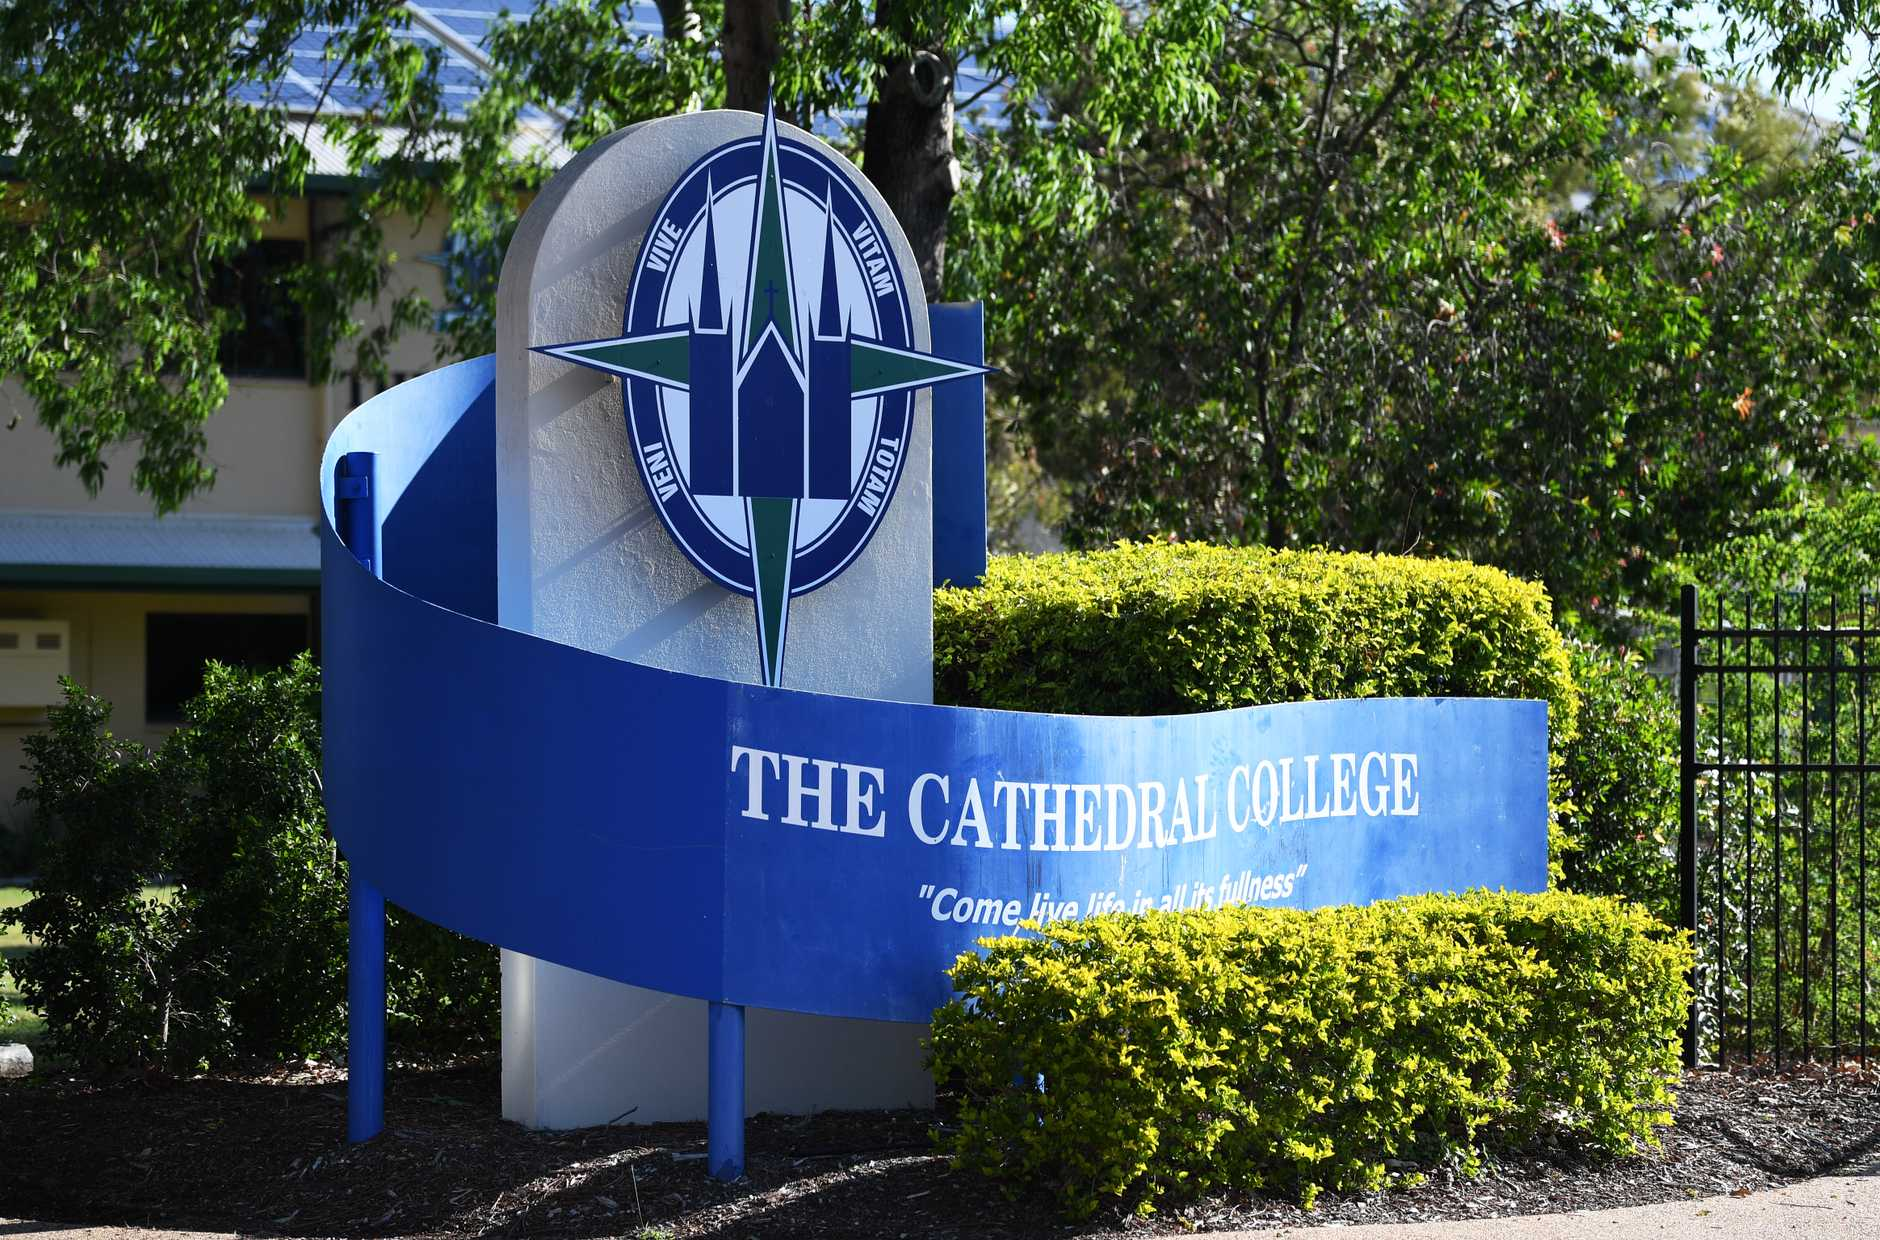 The Cathedral College, Rockhampton.